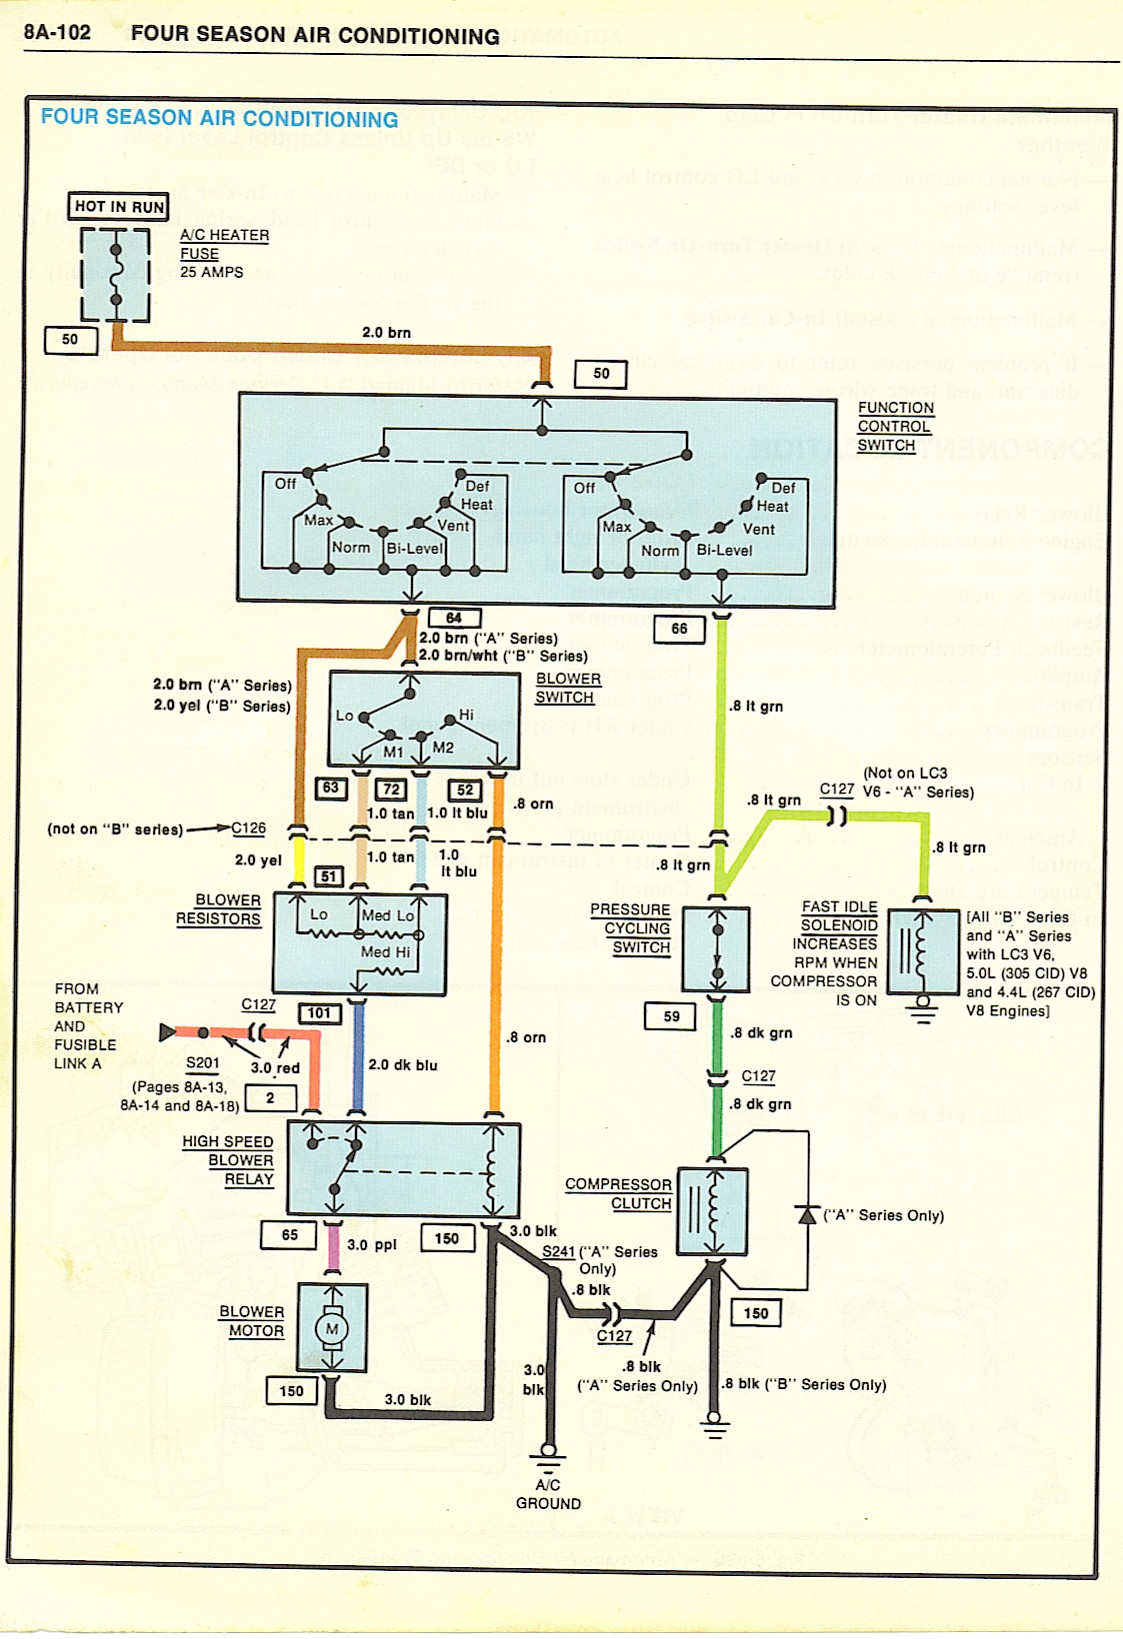 Arcoaire Heat Pump Wiring Diagram : Arcoaire wiring diagram tempstar heat pump